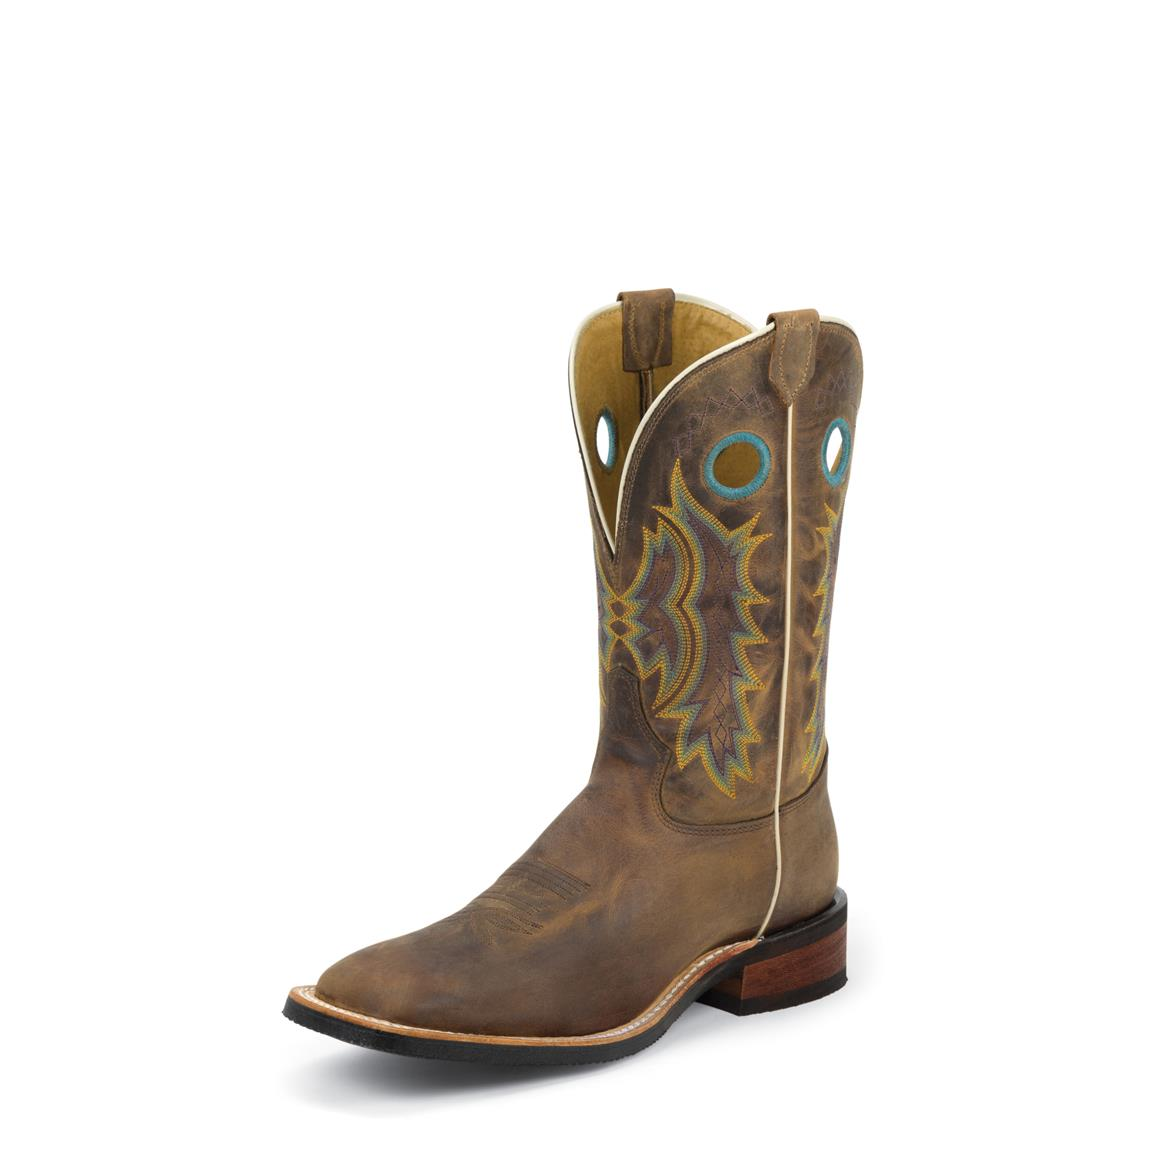 Picture of Tony Lama cowboy boots photo